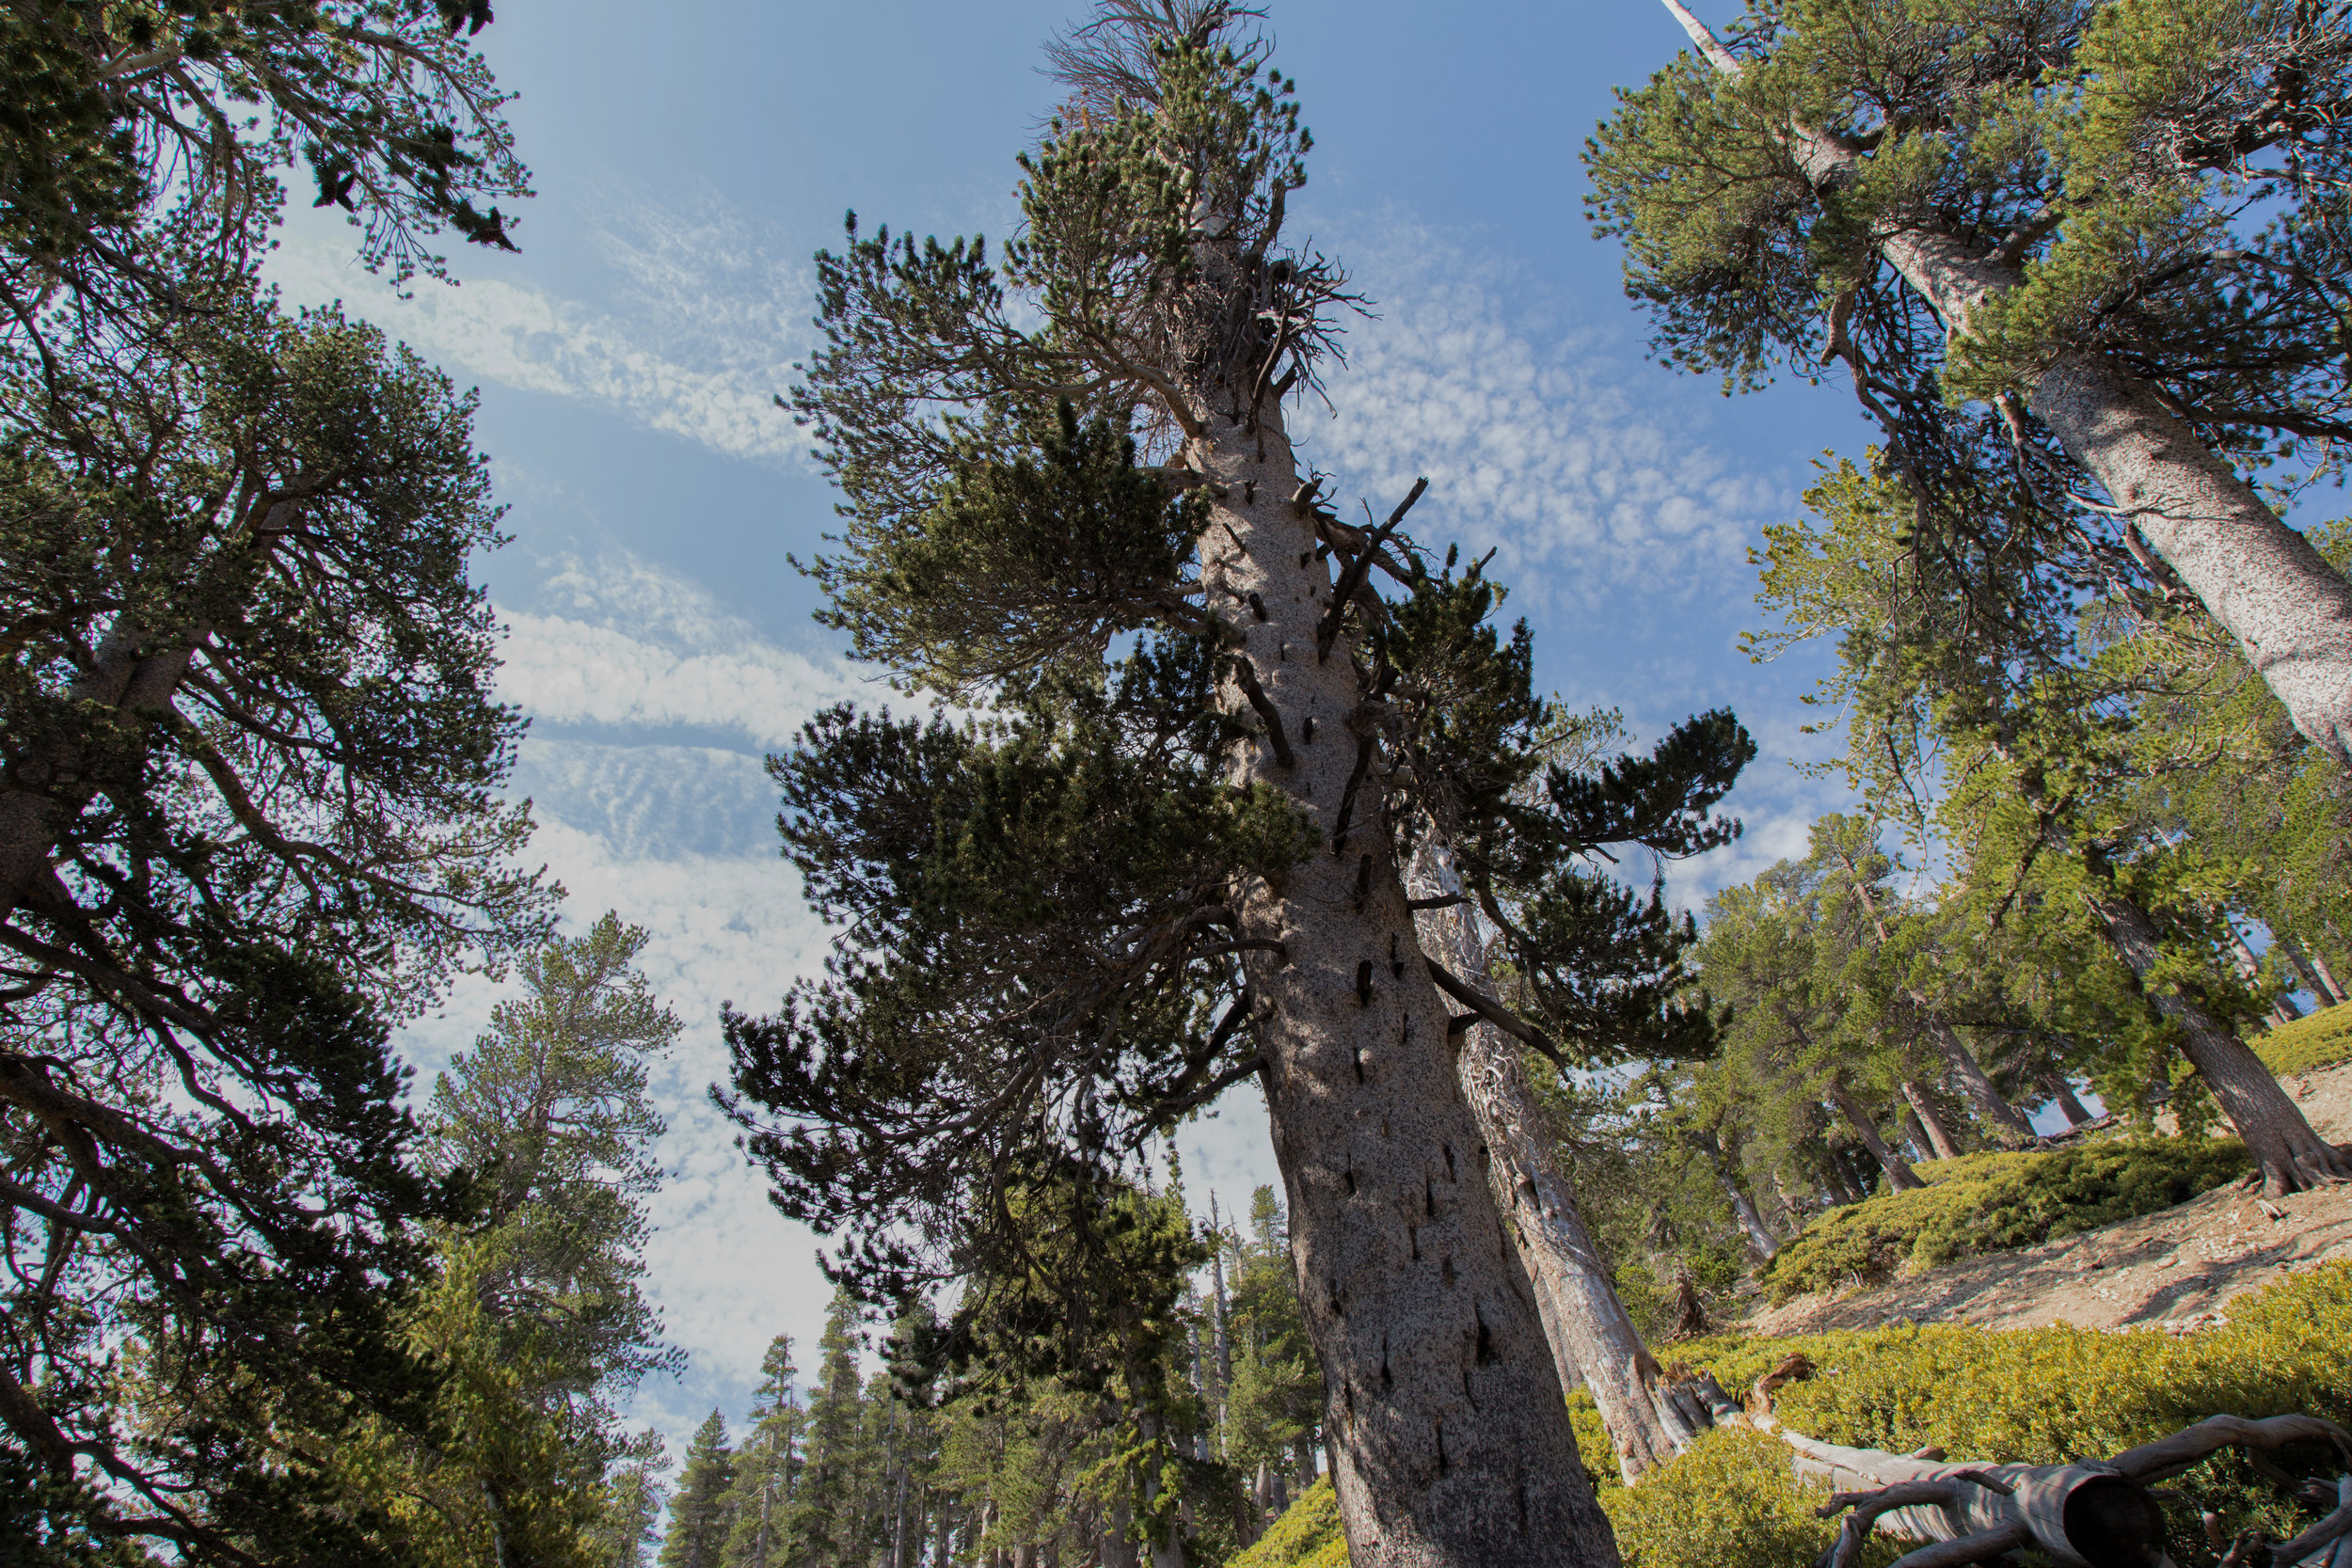 This trail is a nice way to see how the forest changes with altitude starting with oaks, Jeffrey pines, sugar pines and incense cedars. Then it changes to white firs and into lodgepole pines as the forest thins. Finally at about 9,000 ft. you begin to see the ancient, twisted limber pines.